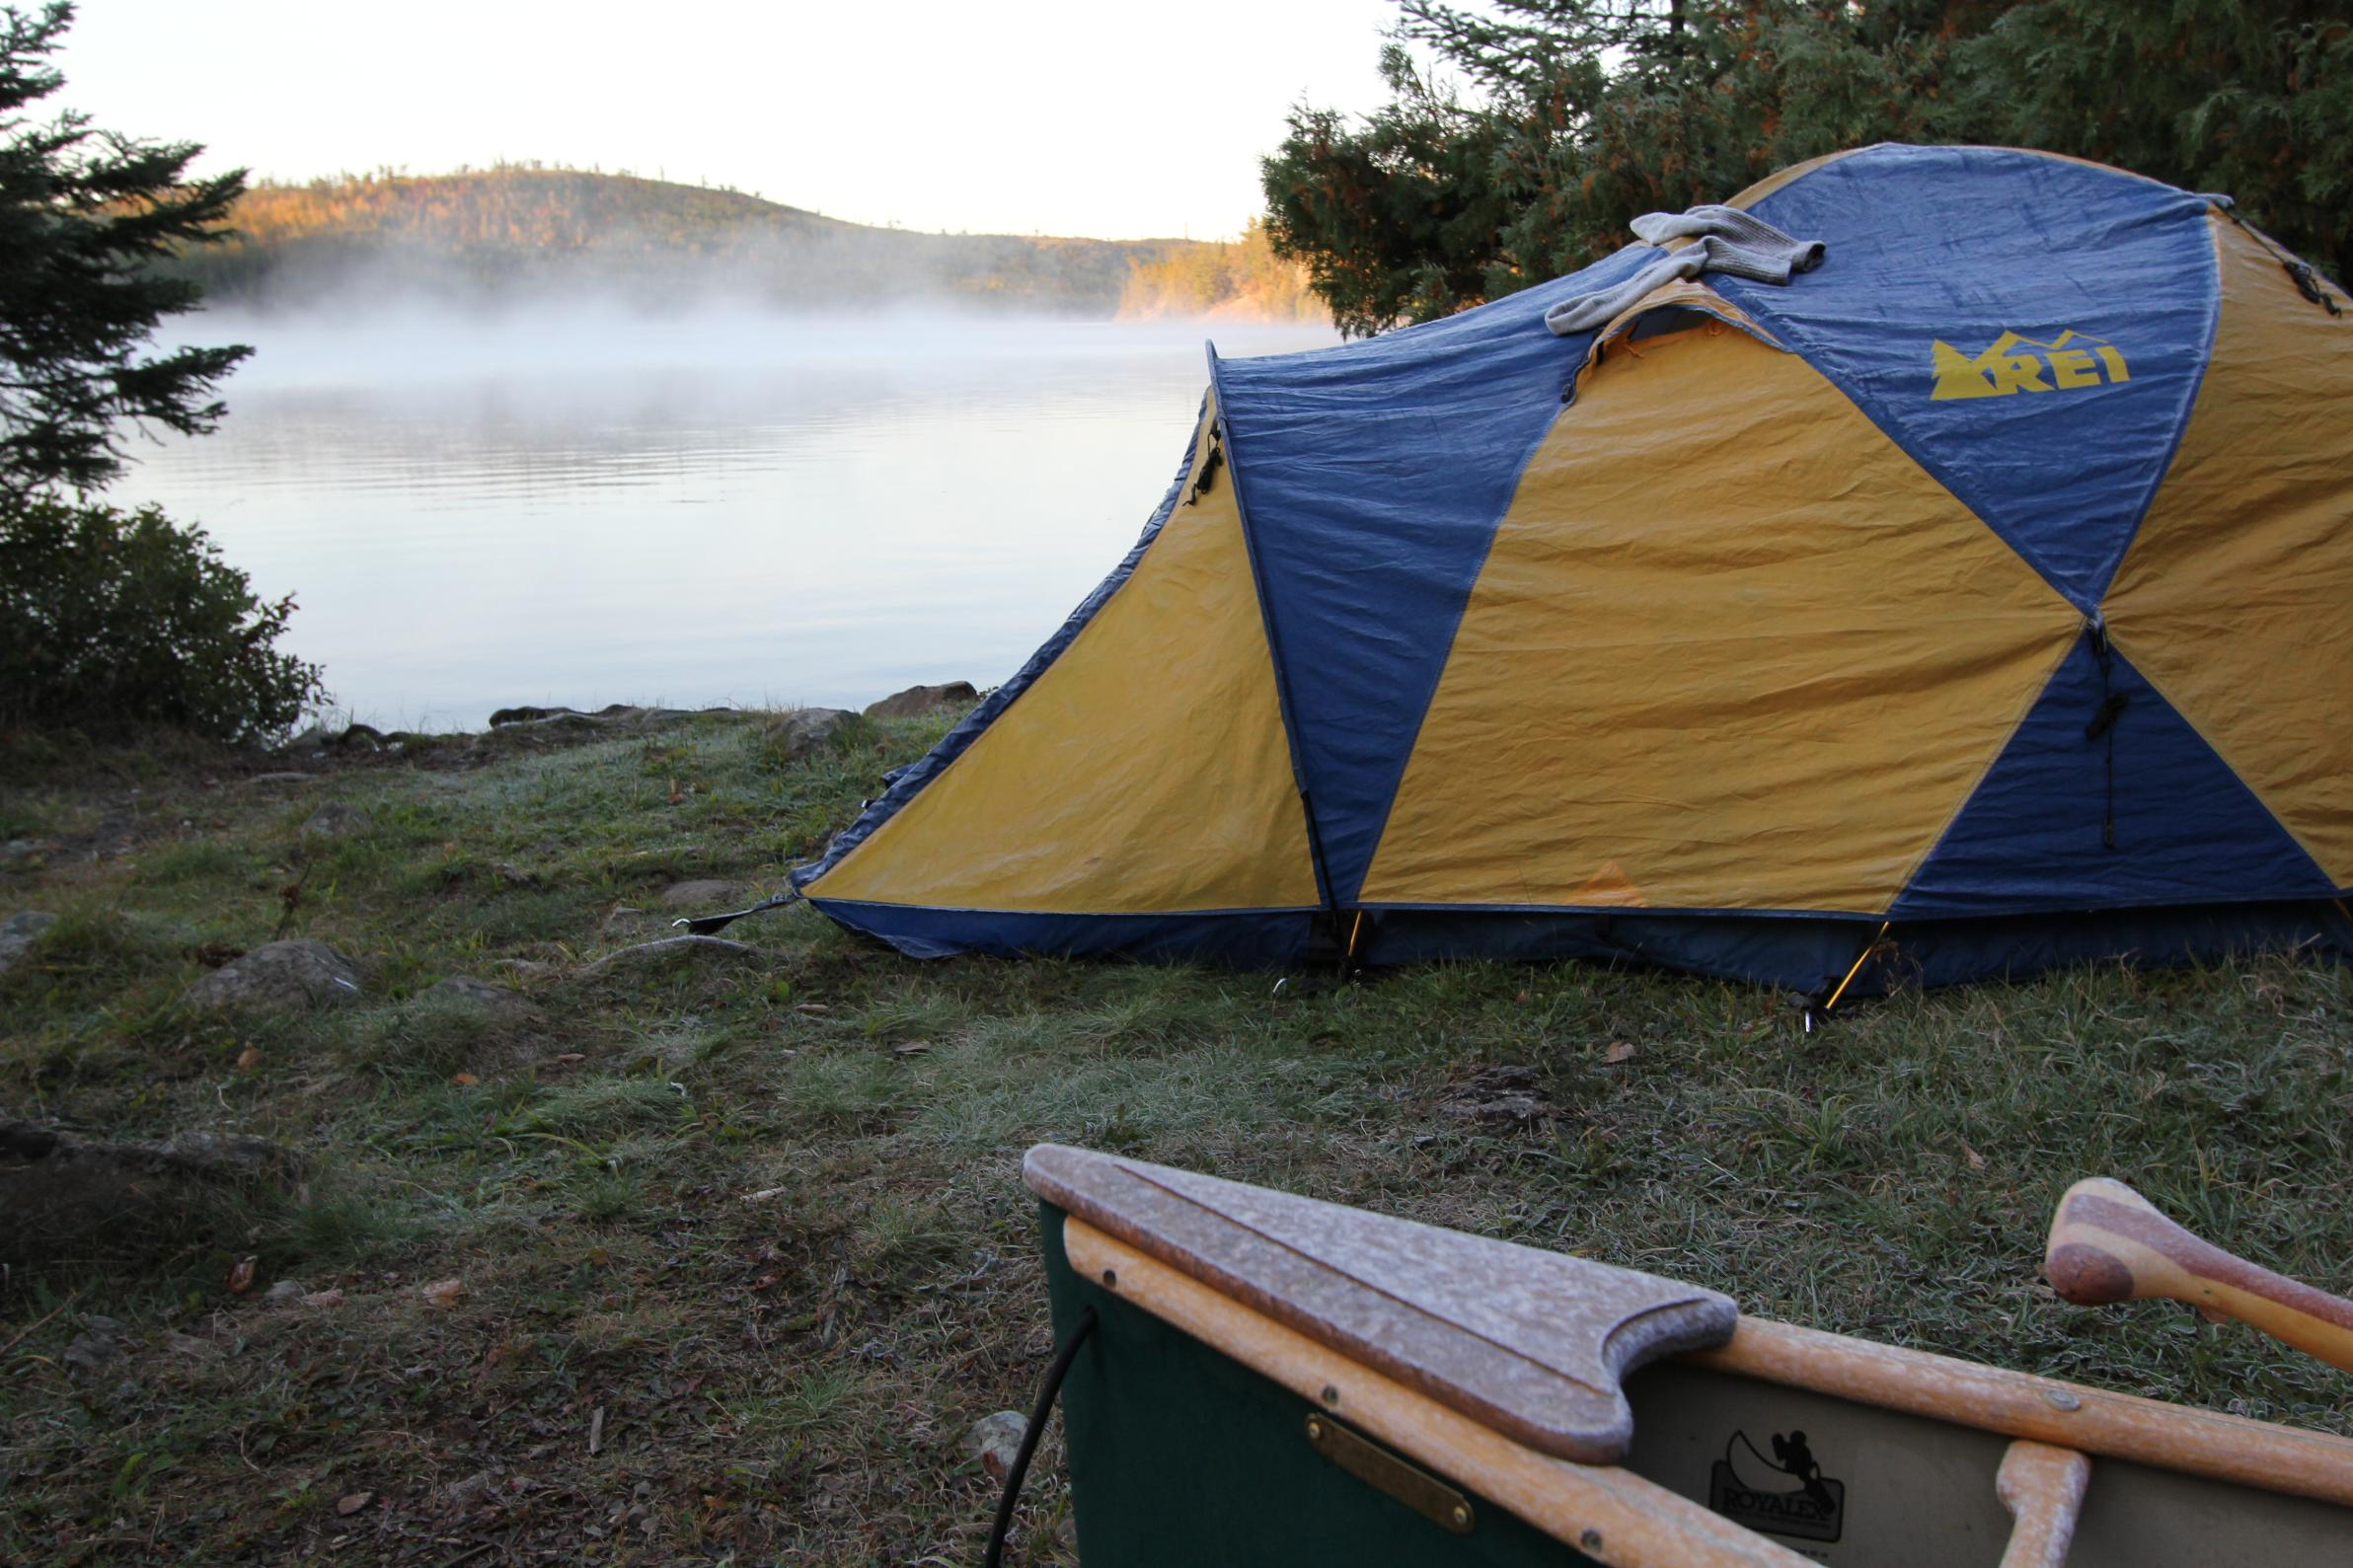 ... took a mountain hardware light wedge 3. One night on hustler a storm almost destroyed the tent. Ever since then I have been taking an Rei geomountain 3. & Boundary Waters Message Board Forum BWCA BWCAW Quetico Park